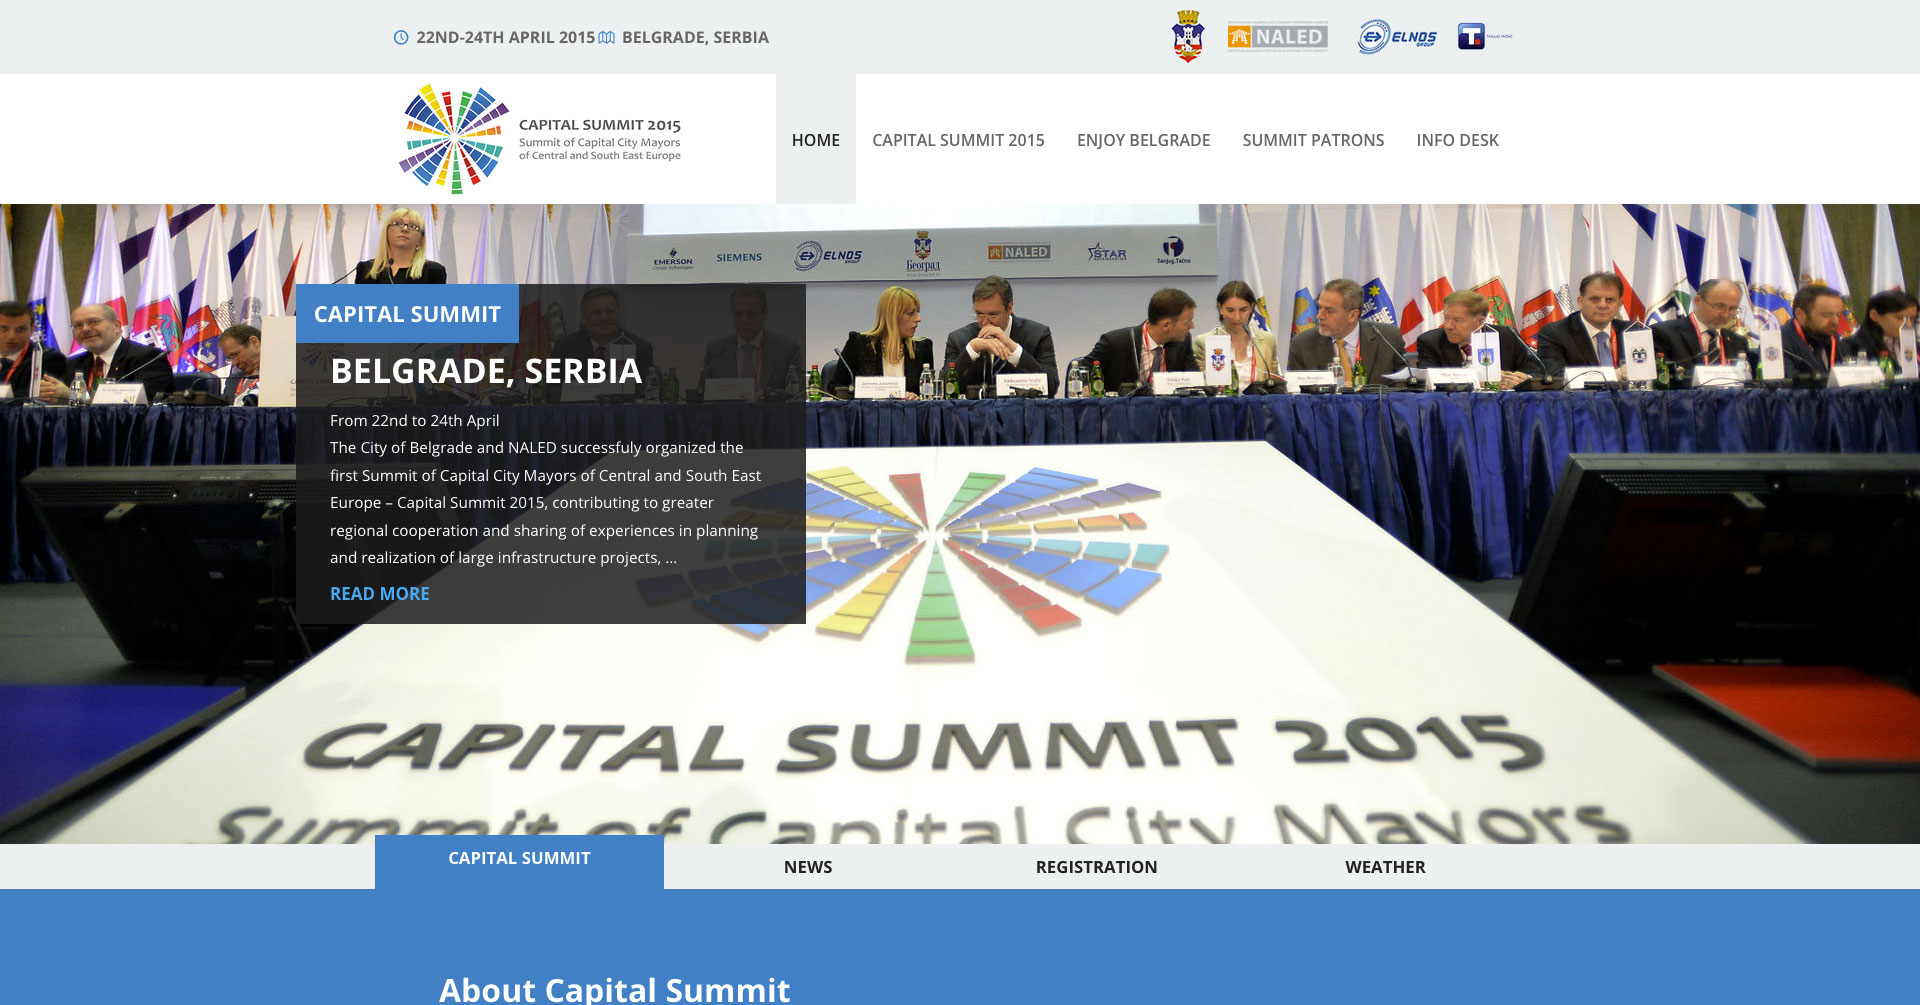 Capital Summit 2015